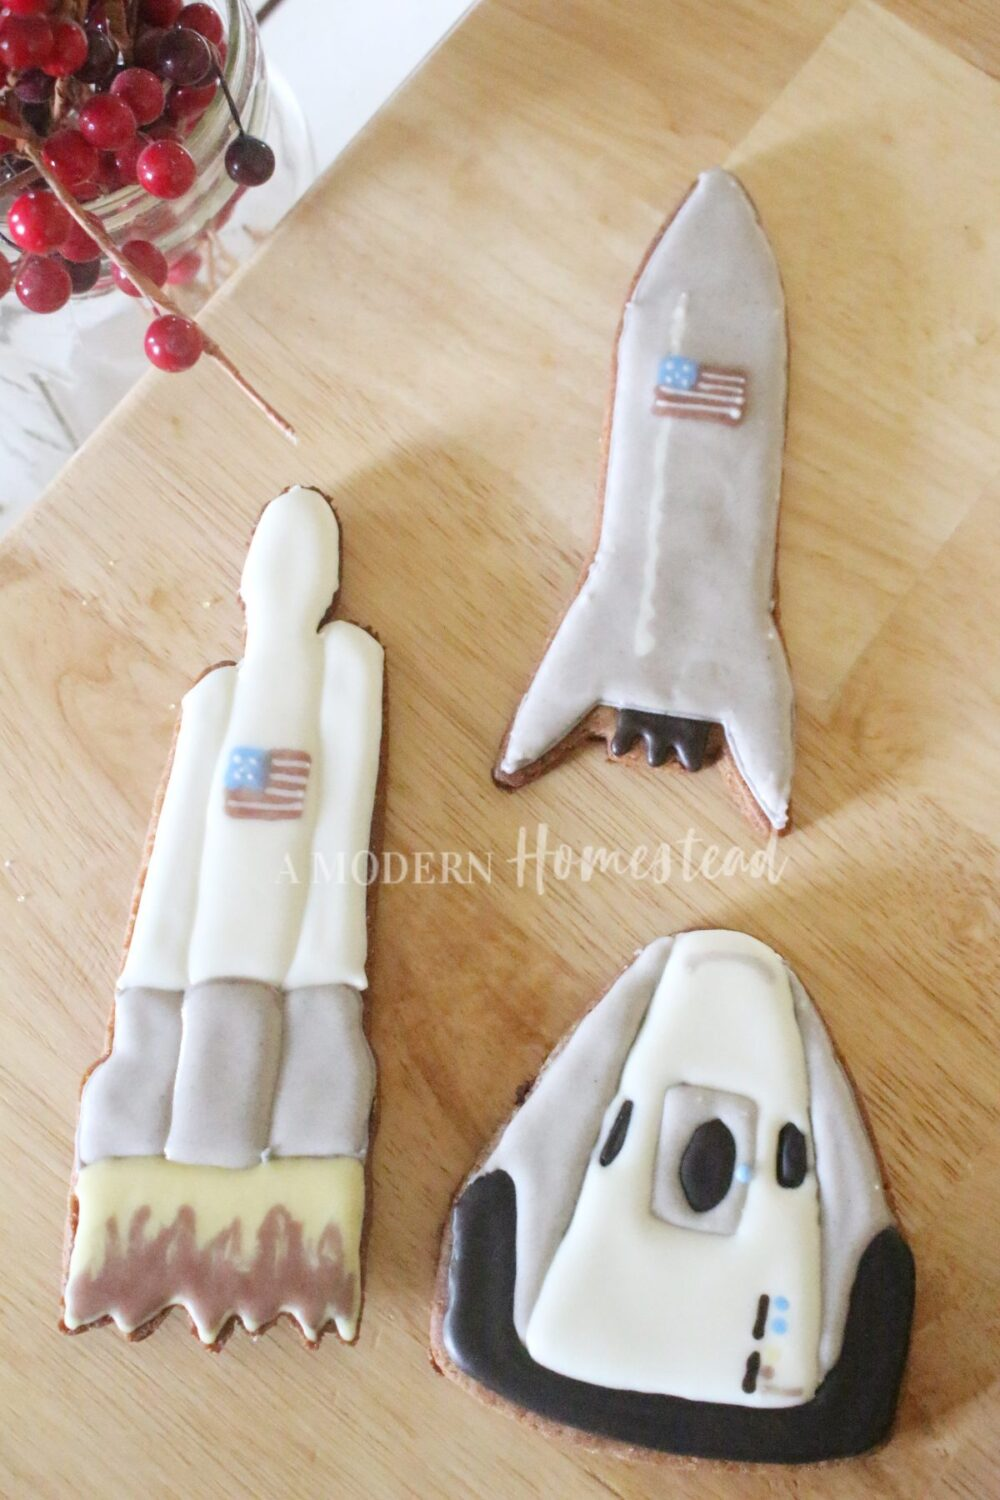 SpaceX Rocket Cookies Decorated with Homemade Royal Icing